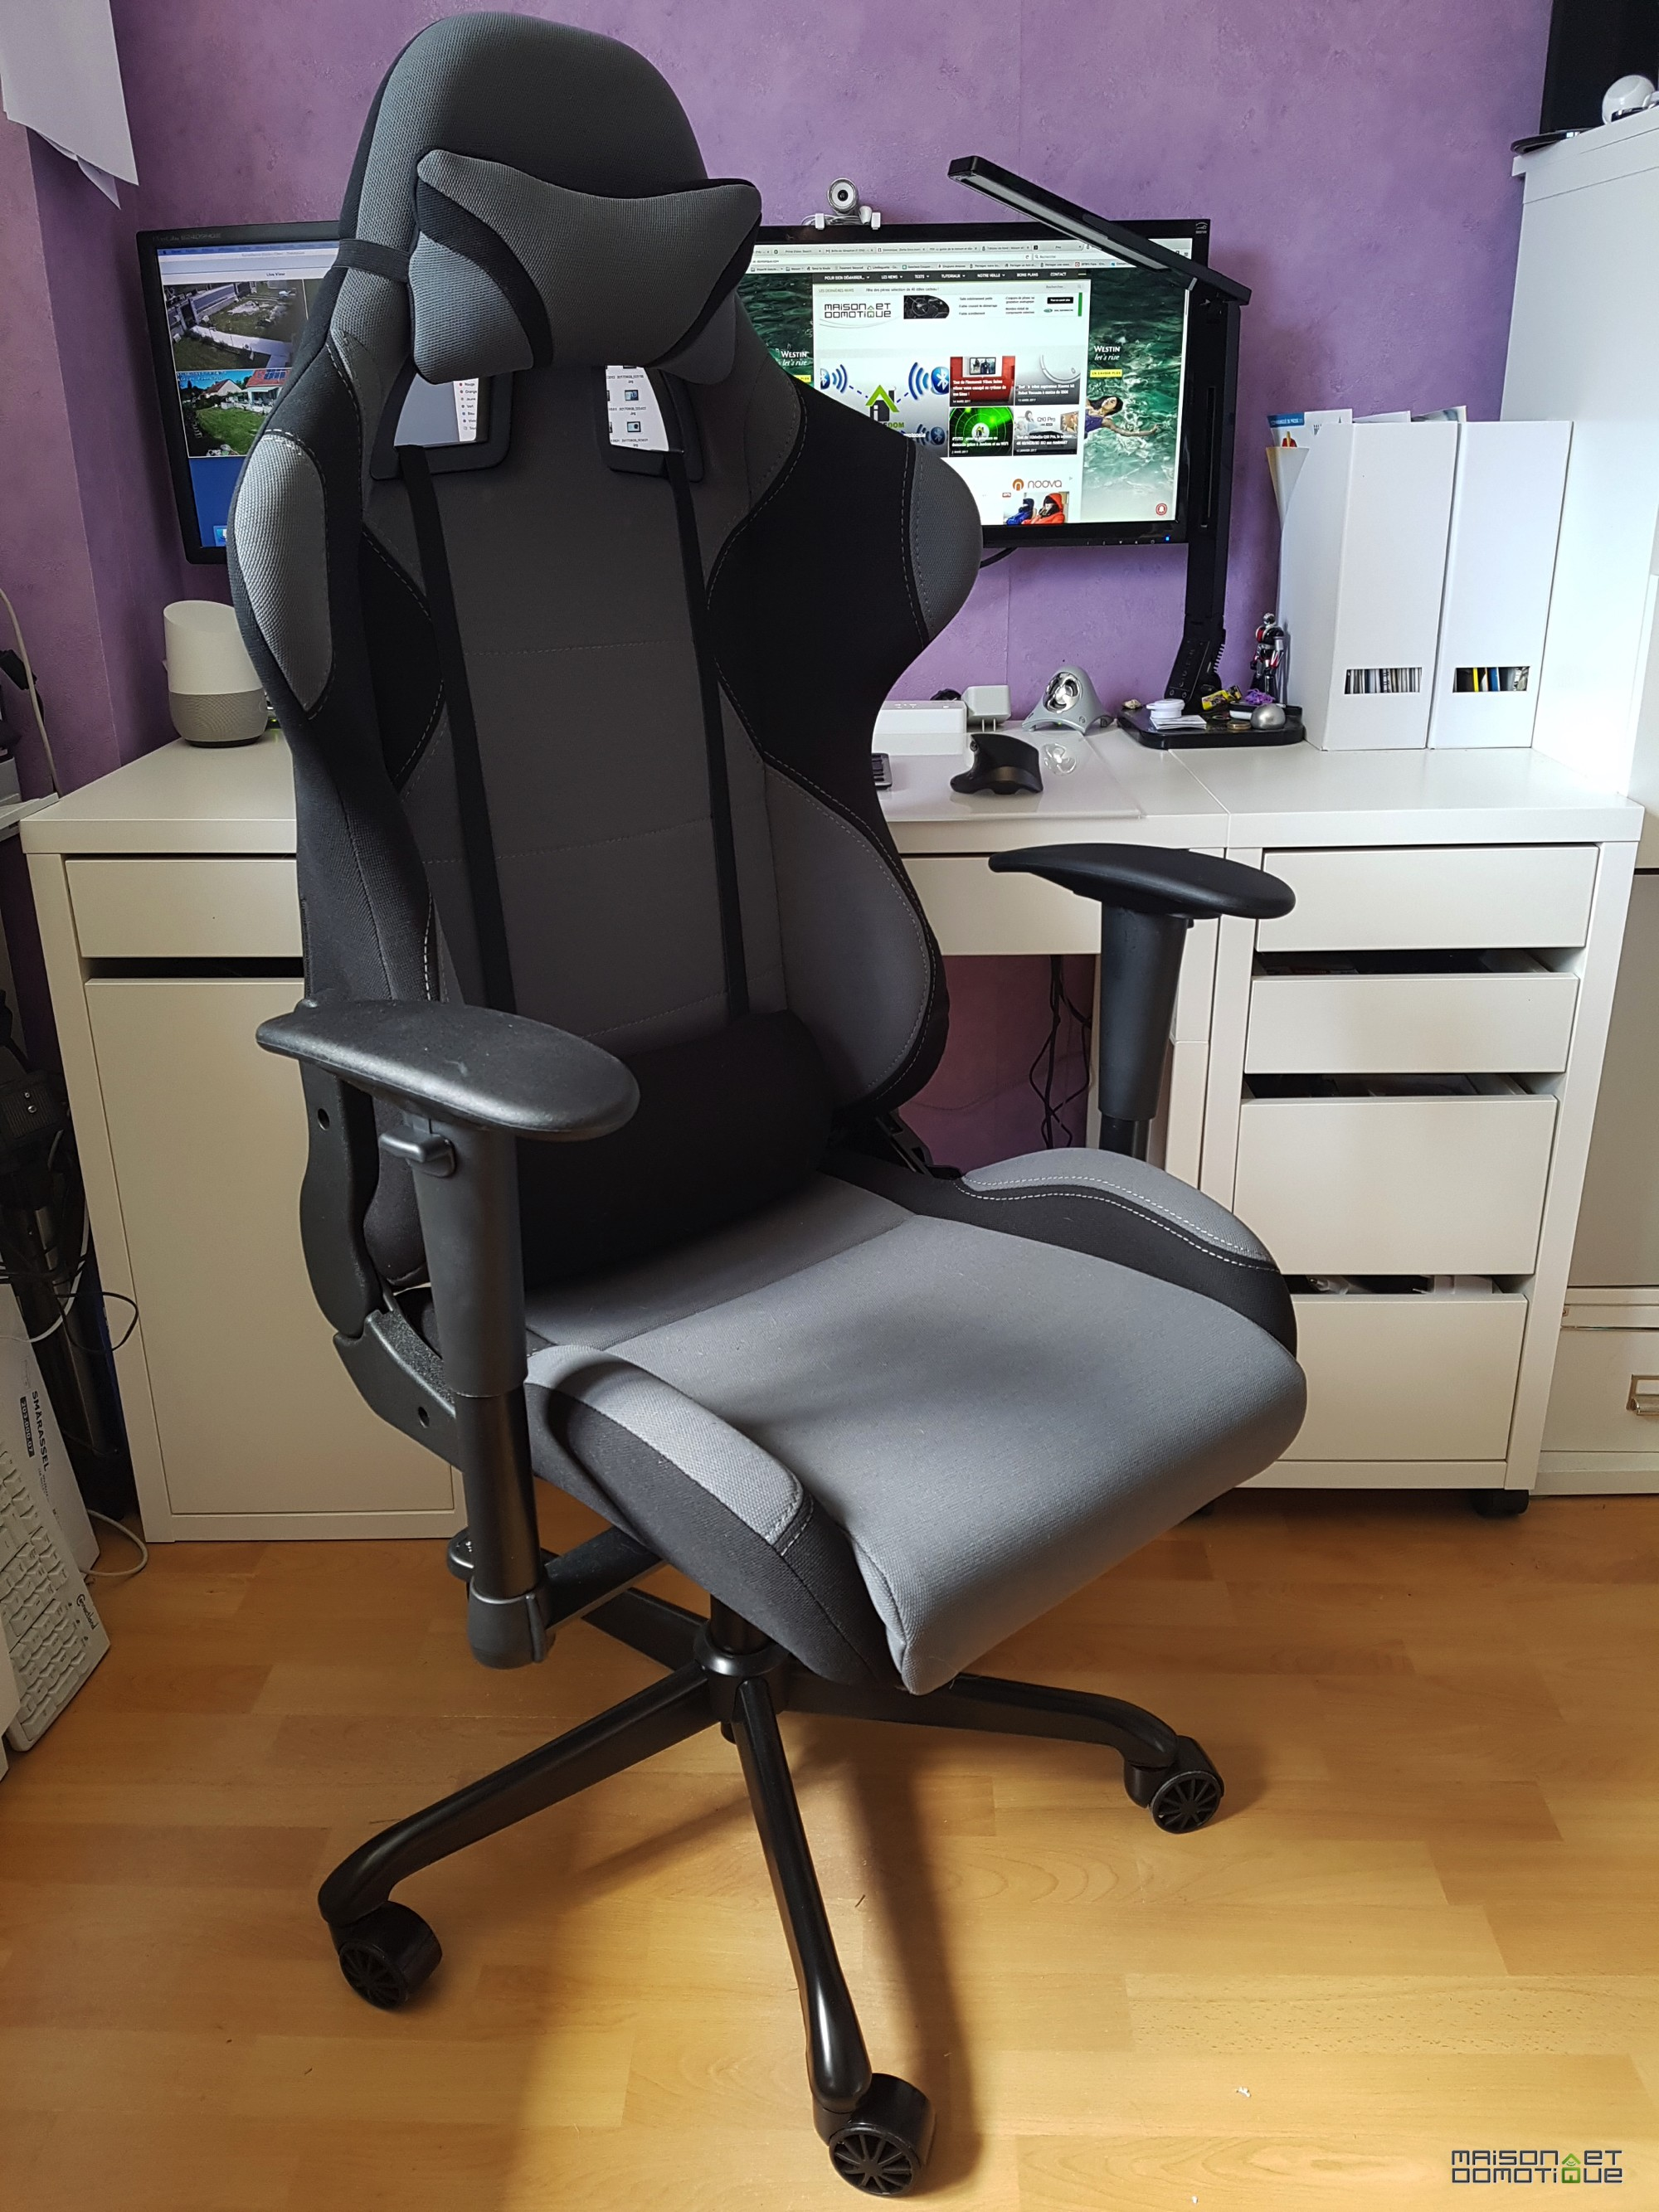 posture fixer chair office on sale how do you fix poor tinnitus talk support forum